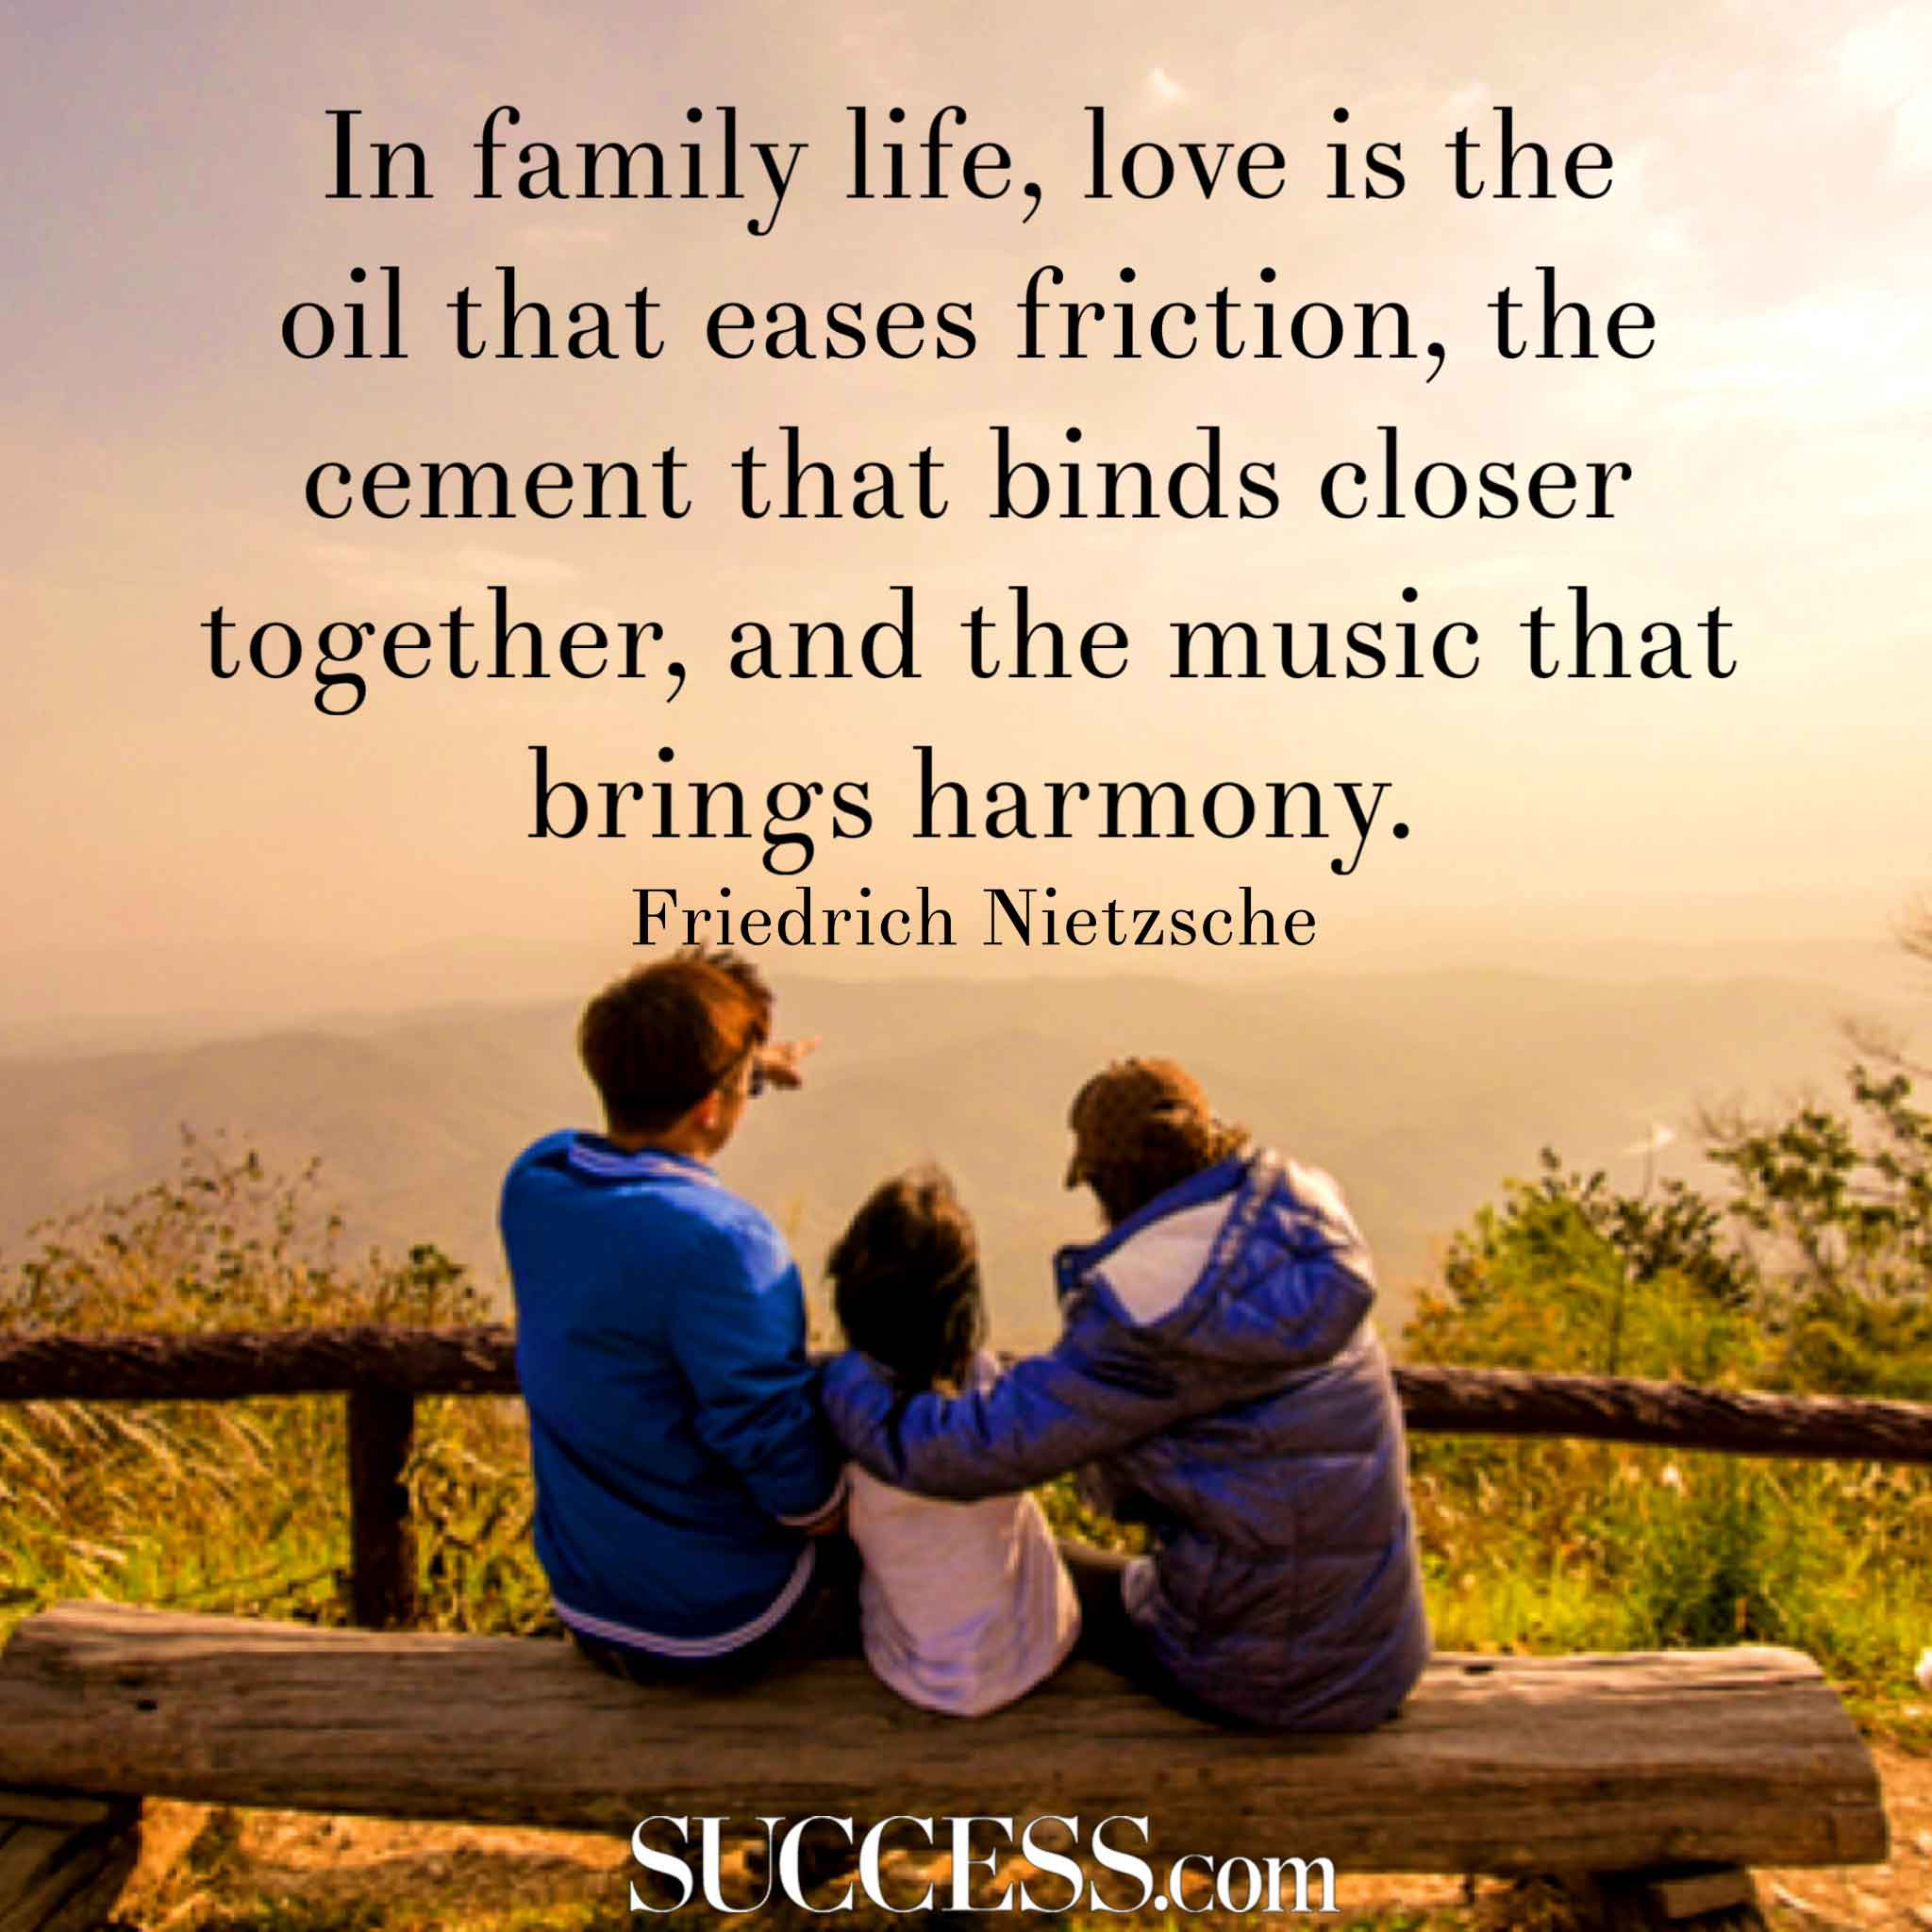 Love Quotes Pictures: 14 Loving Quotes About Family